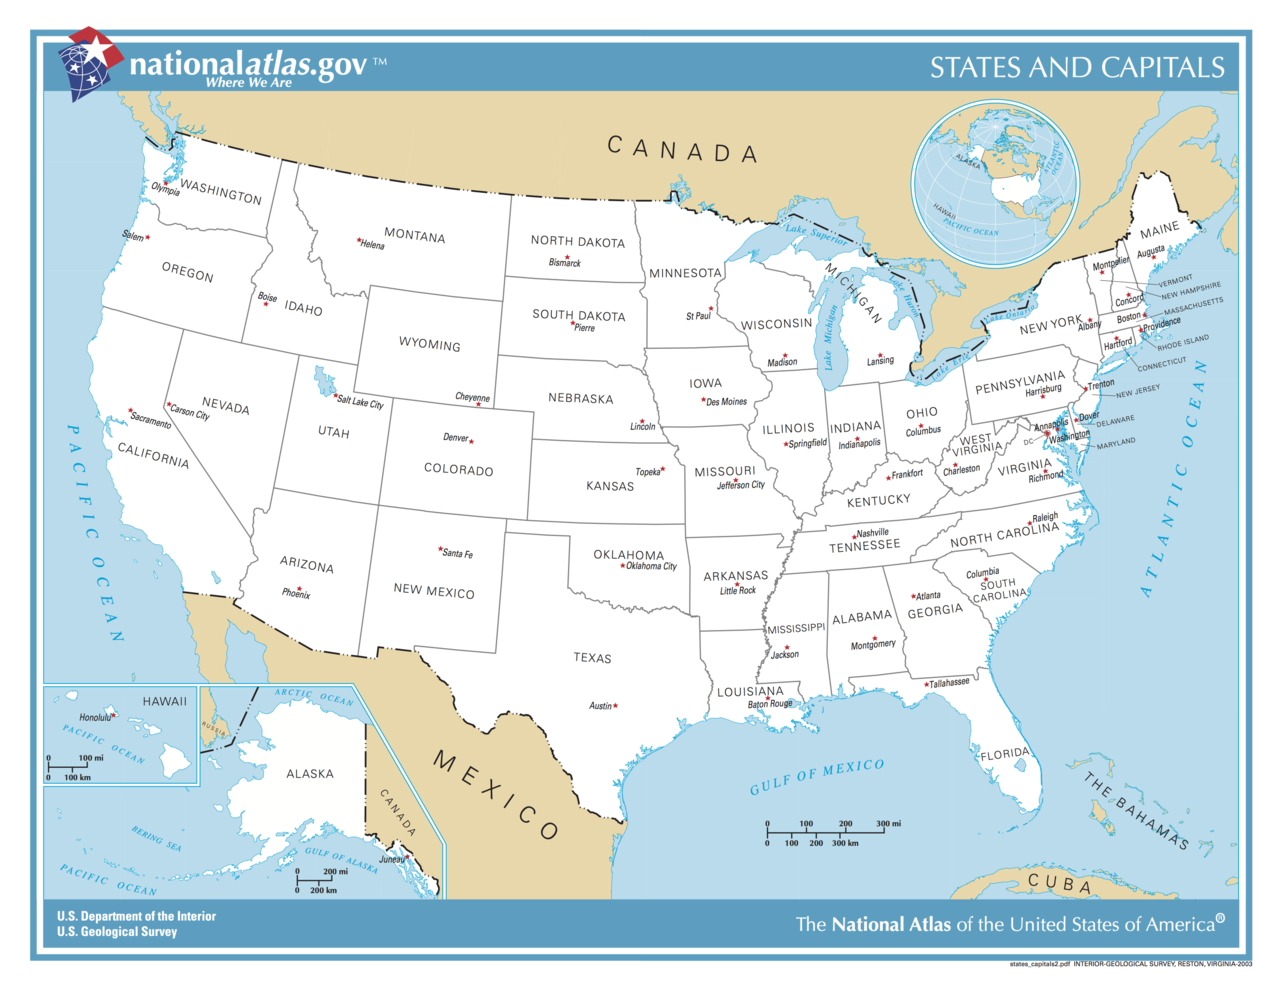 FileUS Map States And Capitalspng Wikimedia Commons - Us map com